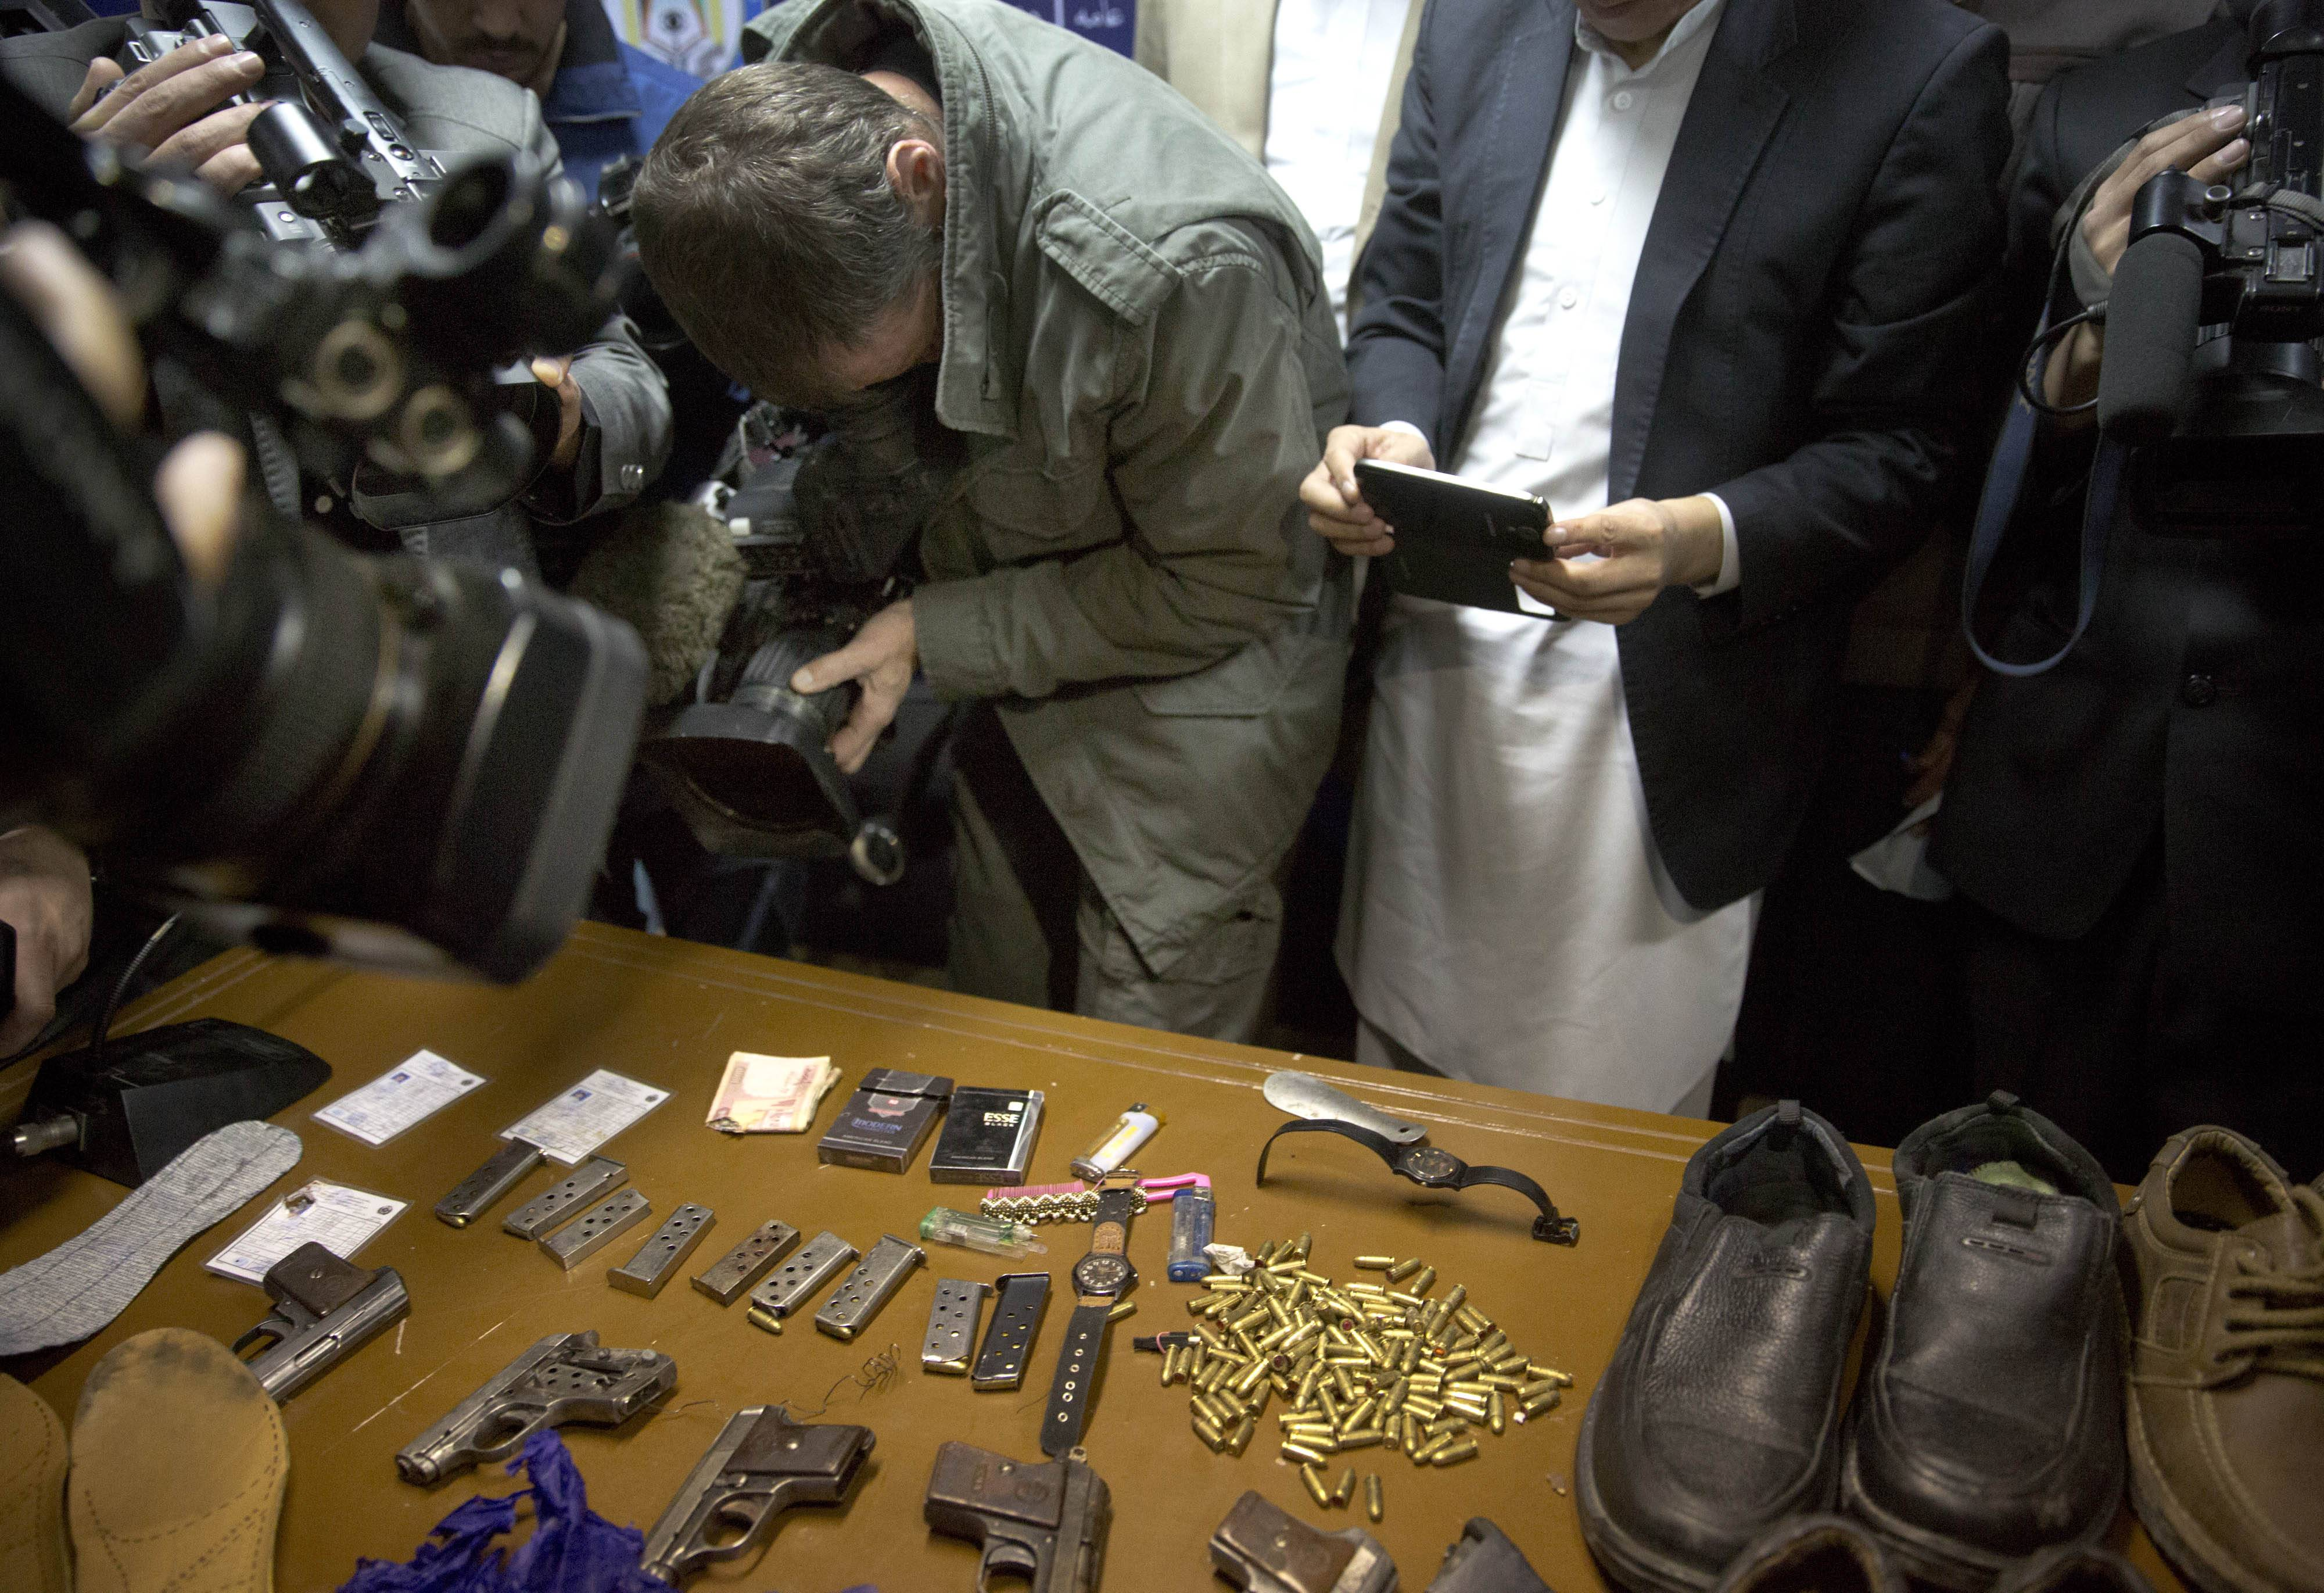 Journalists film some of the weapons and belongings that where used by gunmen during an attack on the Serena hotel  Thursday, and displayed by Afghanistan's intelligence service, during a press conference at the interior ministry in Kabul, Afghanistan, Friday, March 21, 2014.  Four men hiding guns in their shoes attacked the hotel in Kabul opening fire in a restaurant killing at least nine people, including four foreigners, officials said. Authorities appeared stunned that the militants had managed to get through the tight security at the Serena hotel -- considered one of the safest places to stay in Kabul.